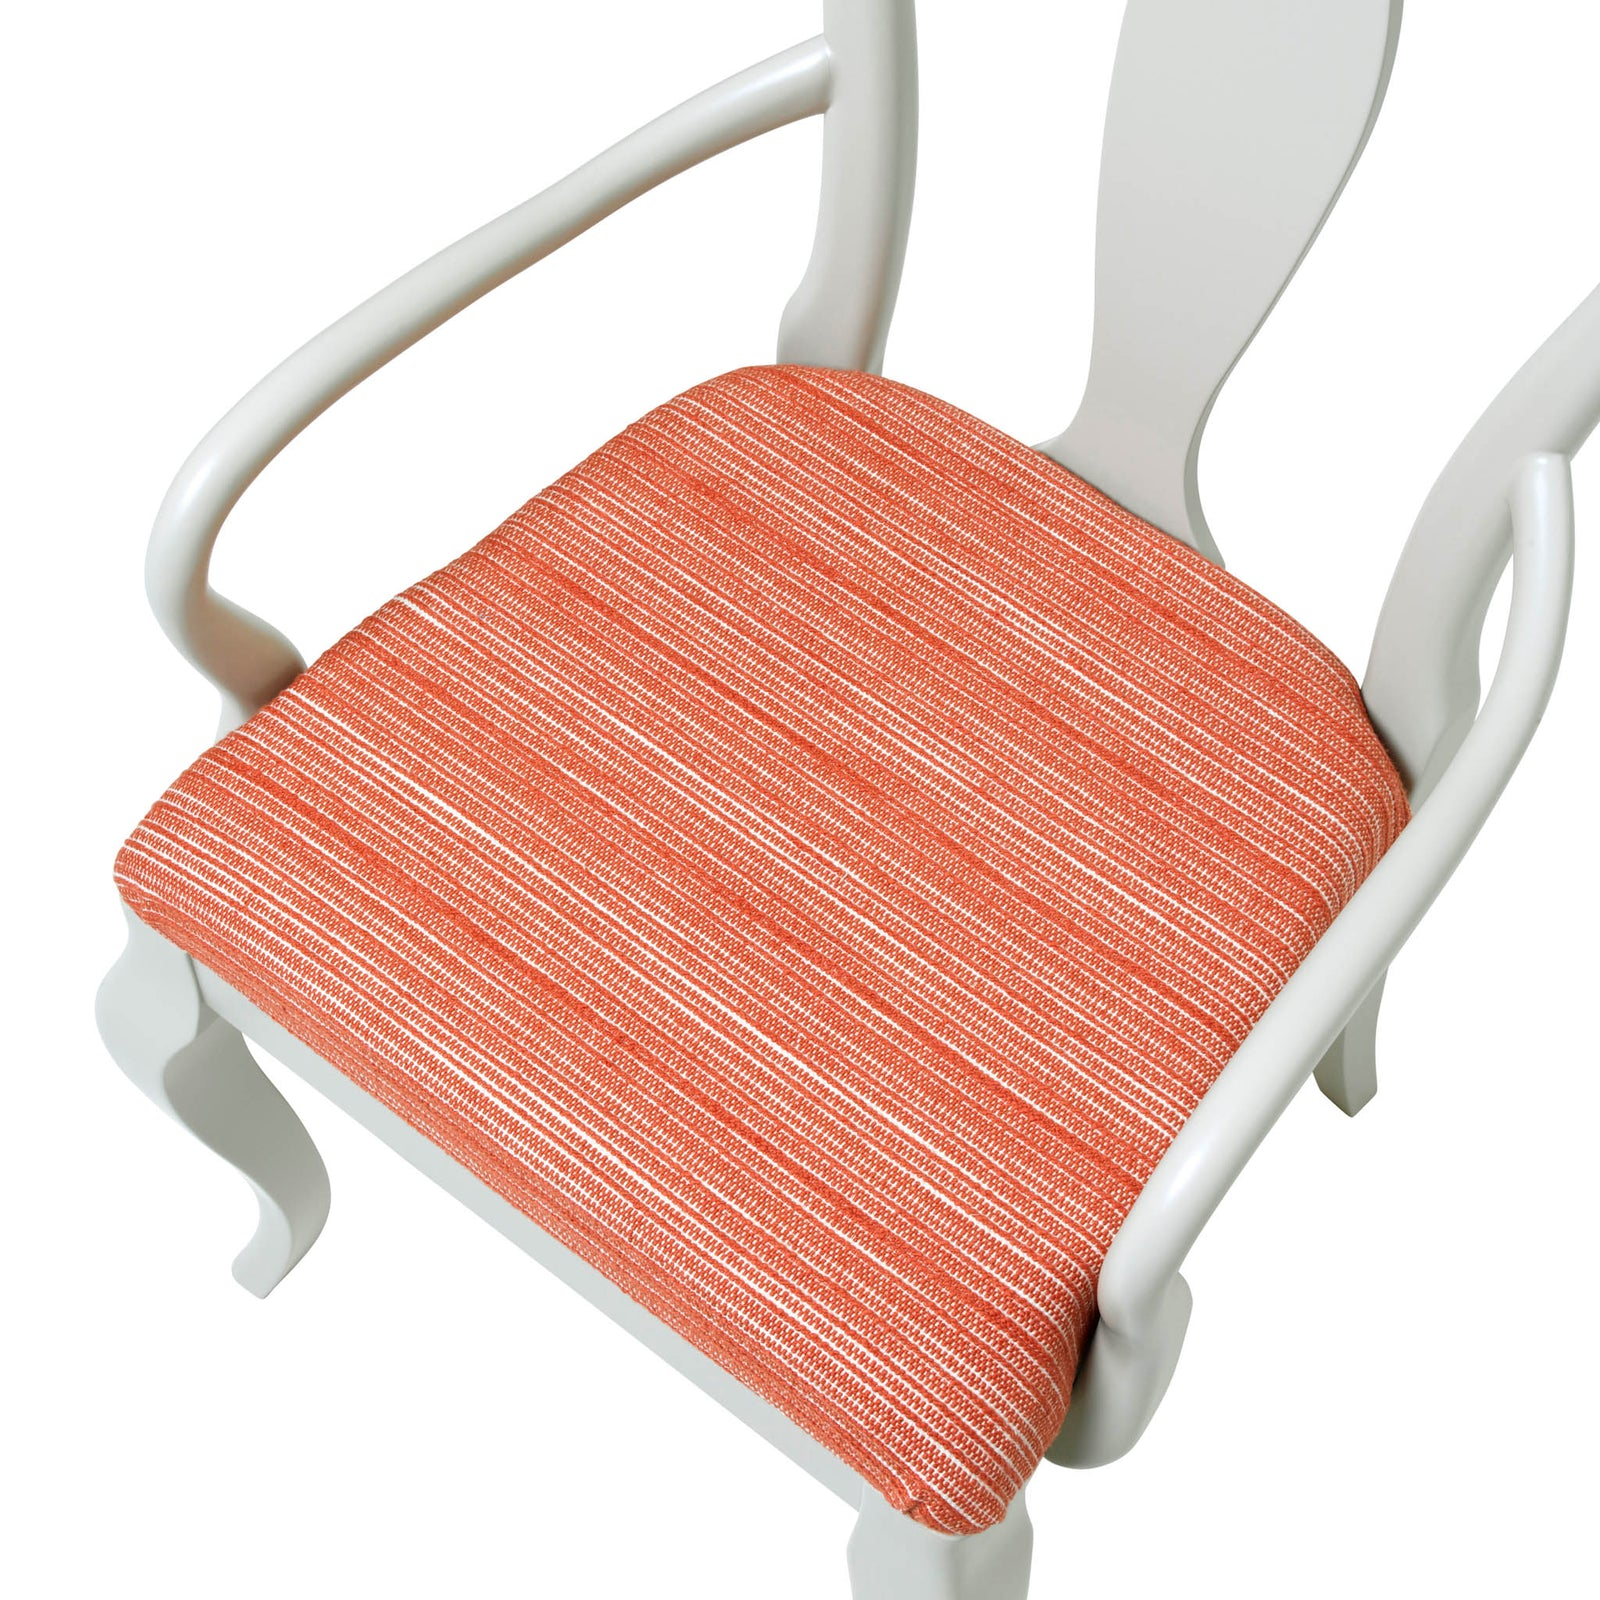 The Marco Chair Upholstered in the wonderful Hippie in Coral from Christopher Farr Cloth